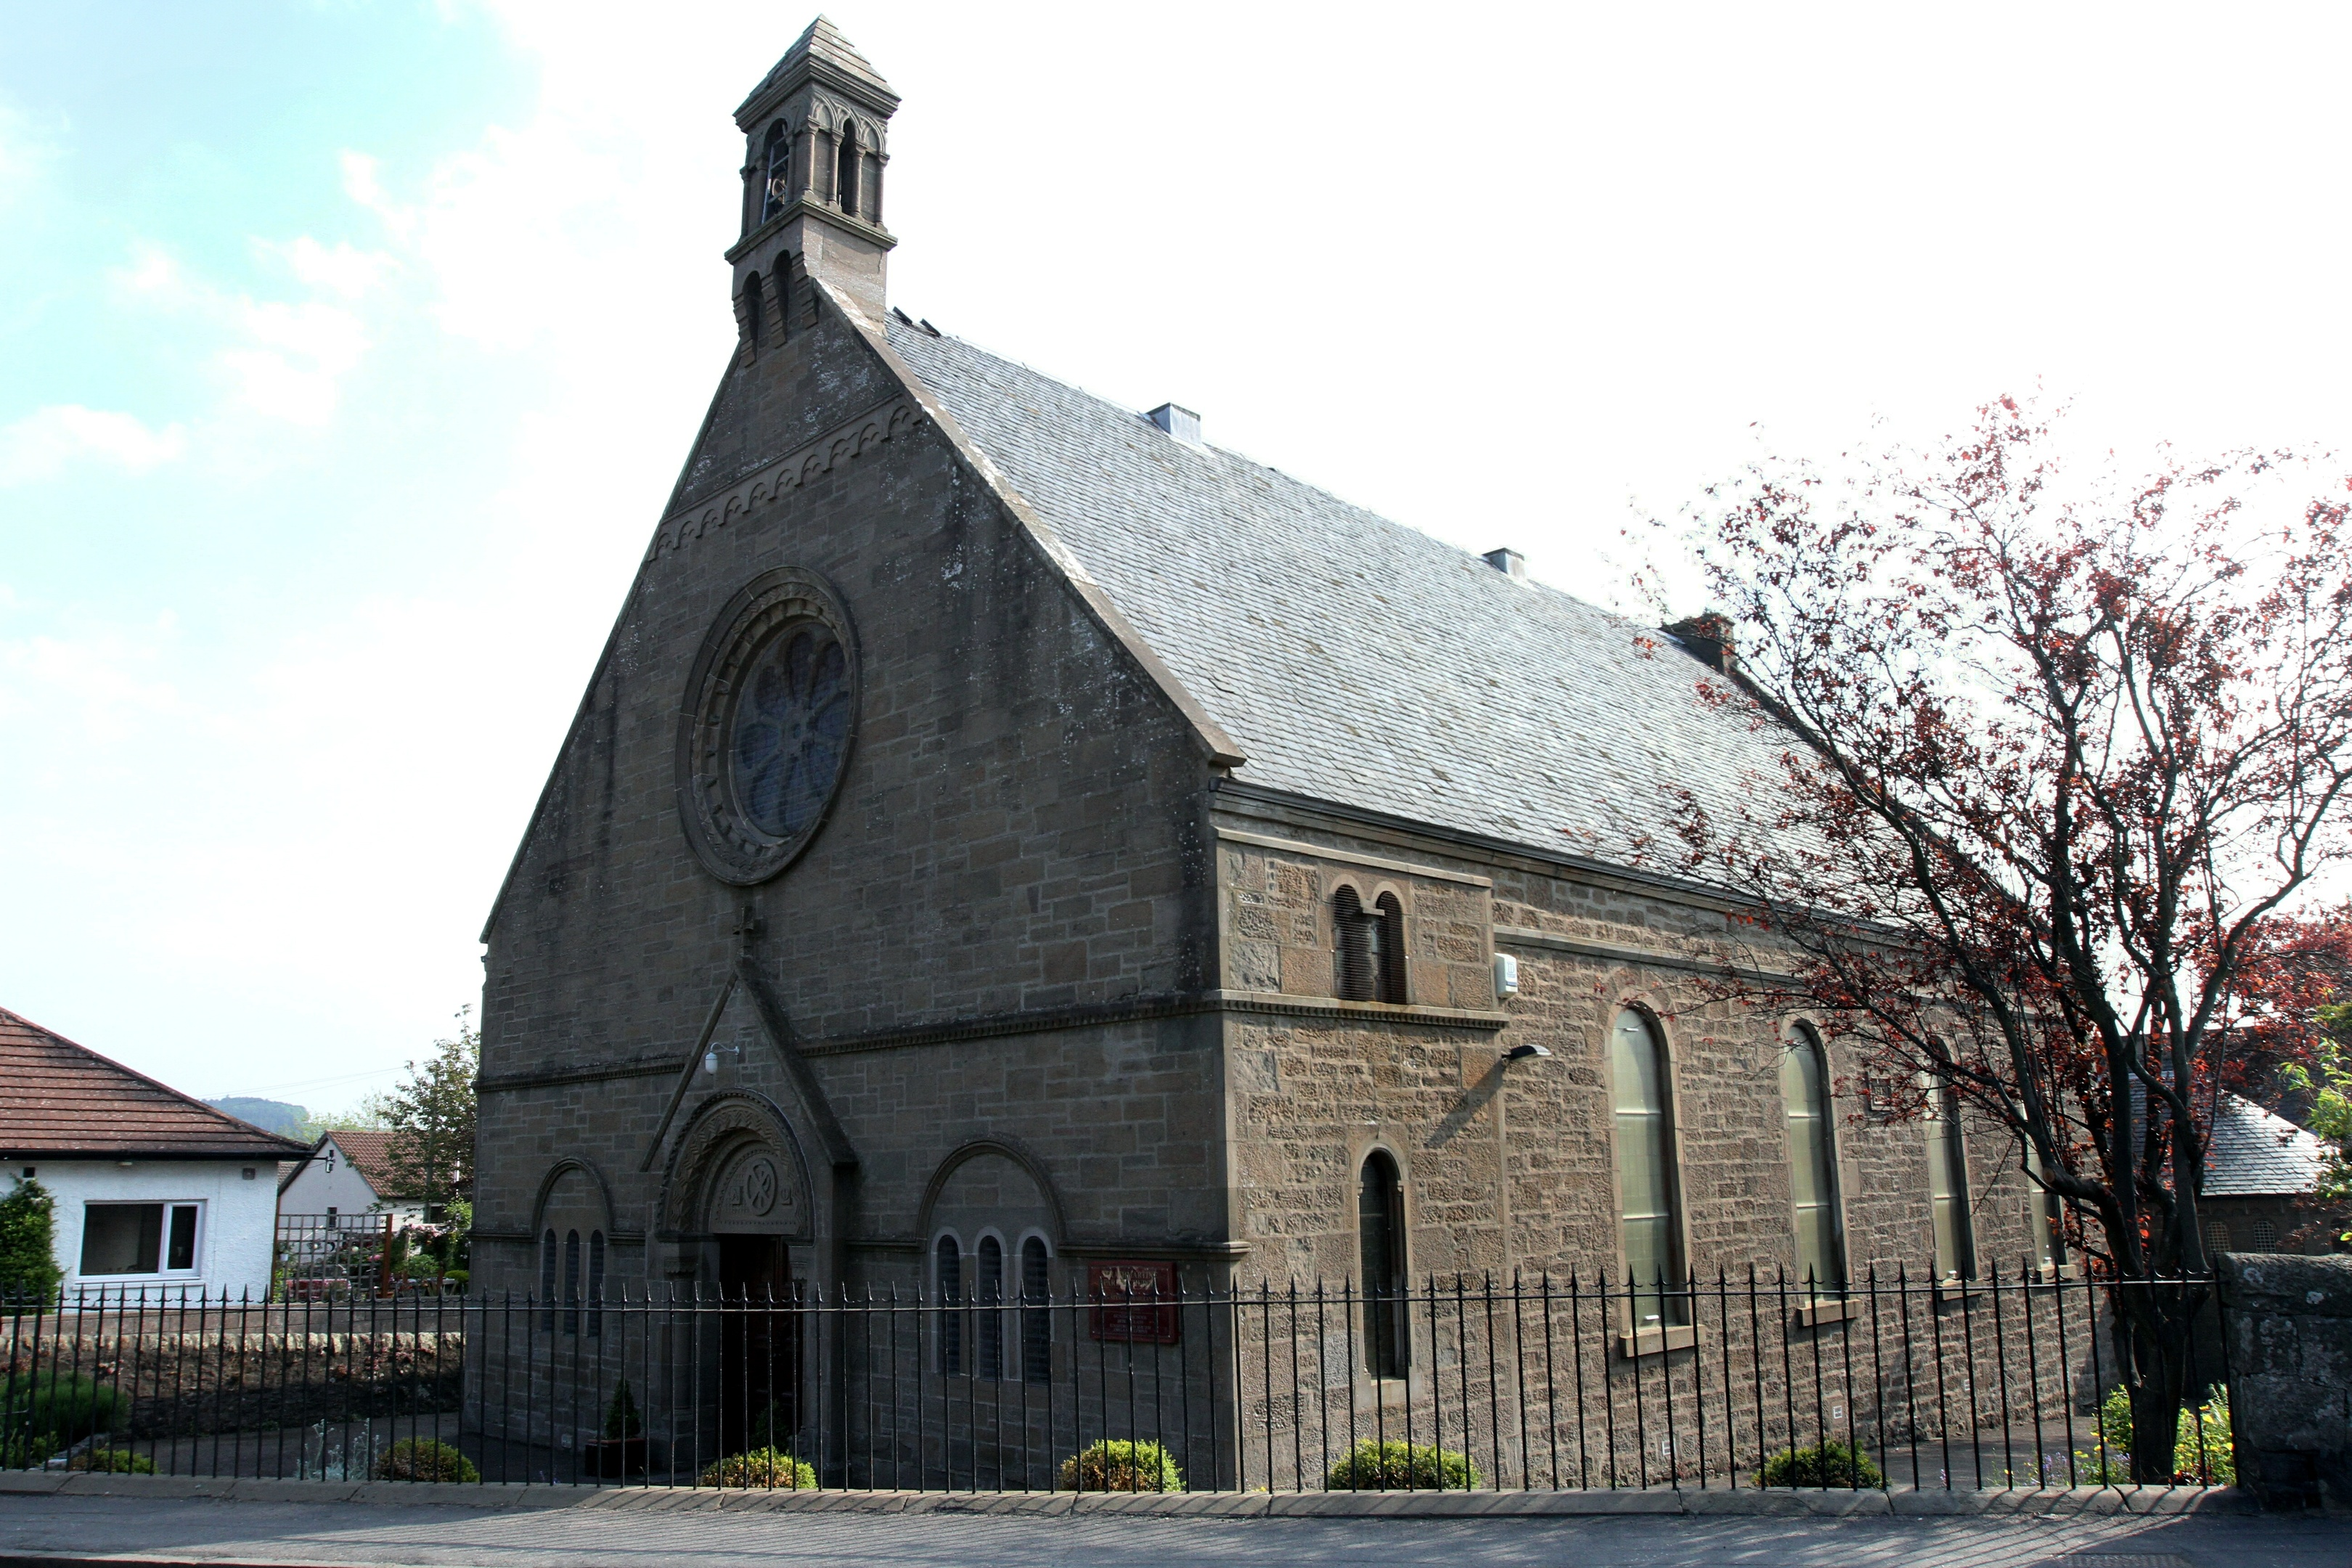 Members of the public reported a suspicious package at the church door.